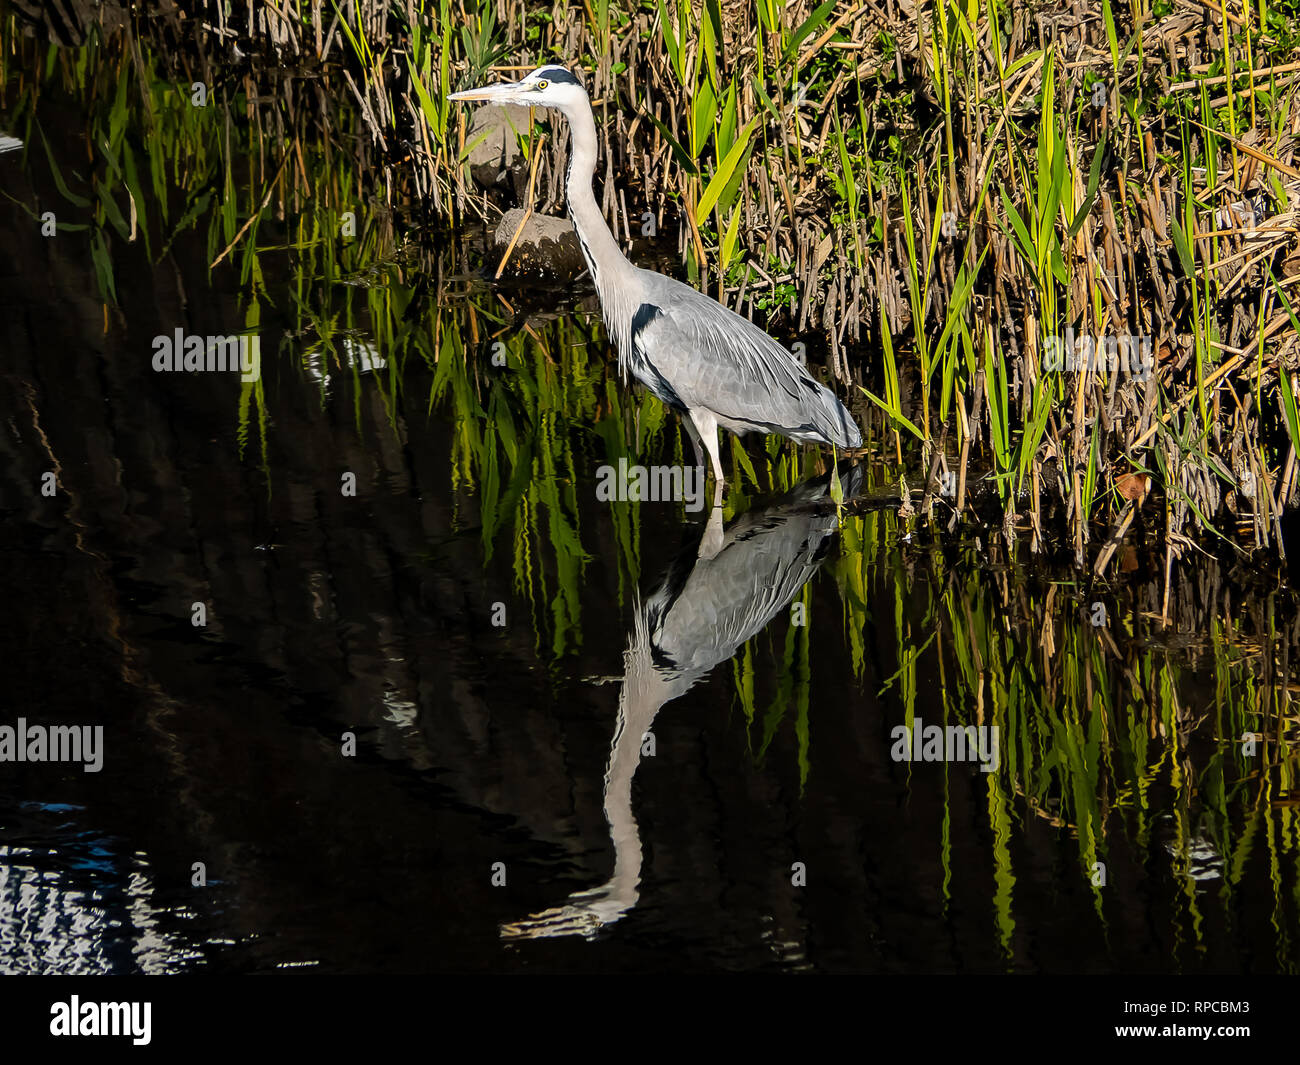 A gray heron wades in a river in central Kanagawa prefecture, Japan. - Stock Image